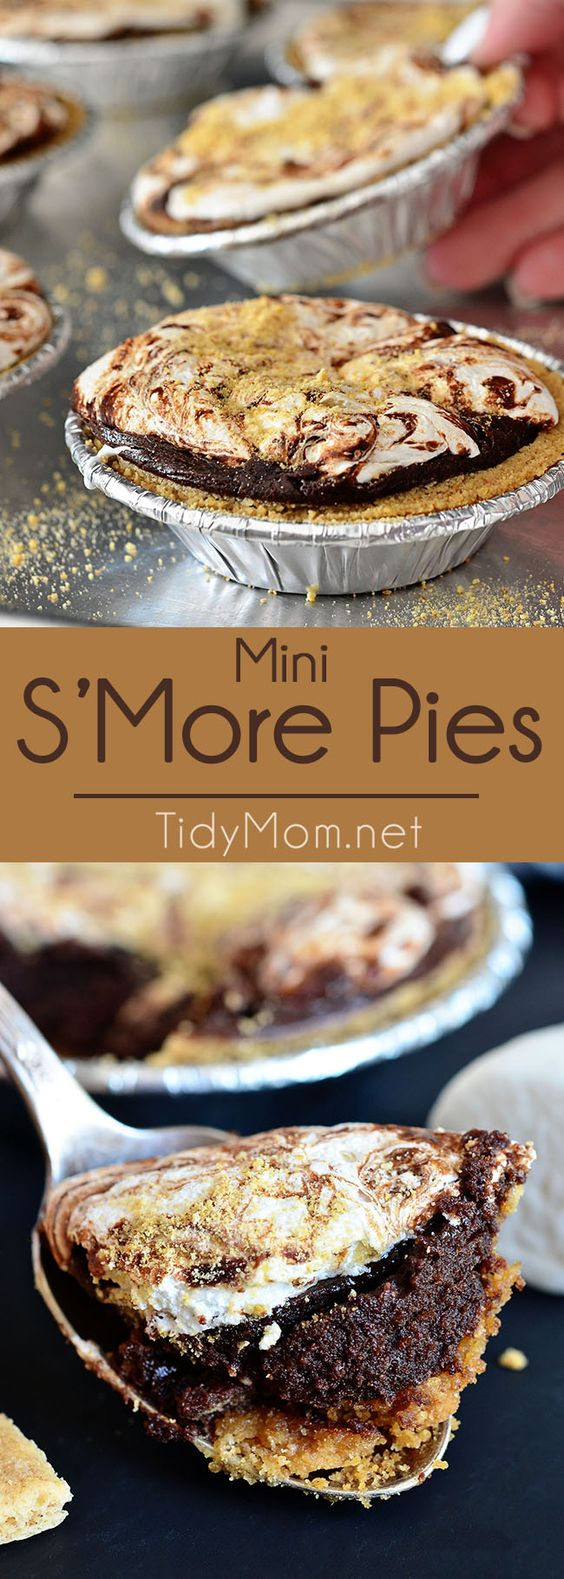 Mini S'more Pies are the perfect dessert for entertaining or snacking. It's one…